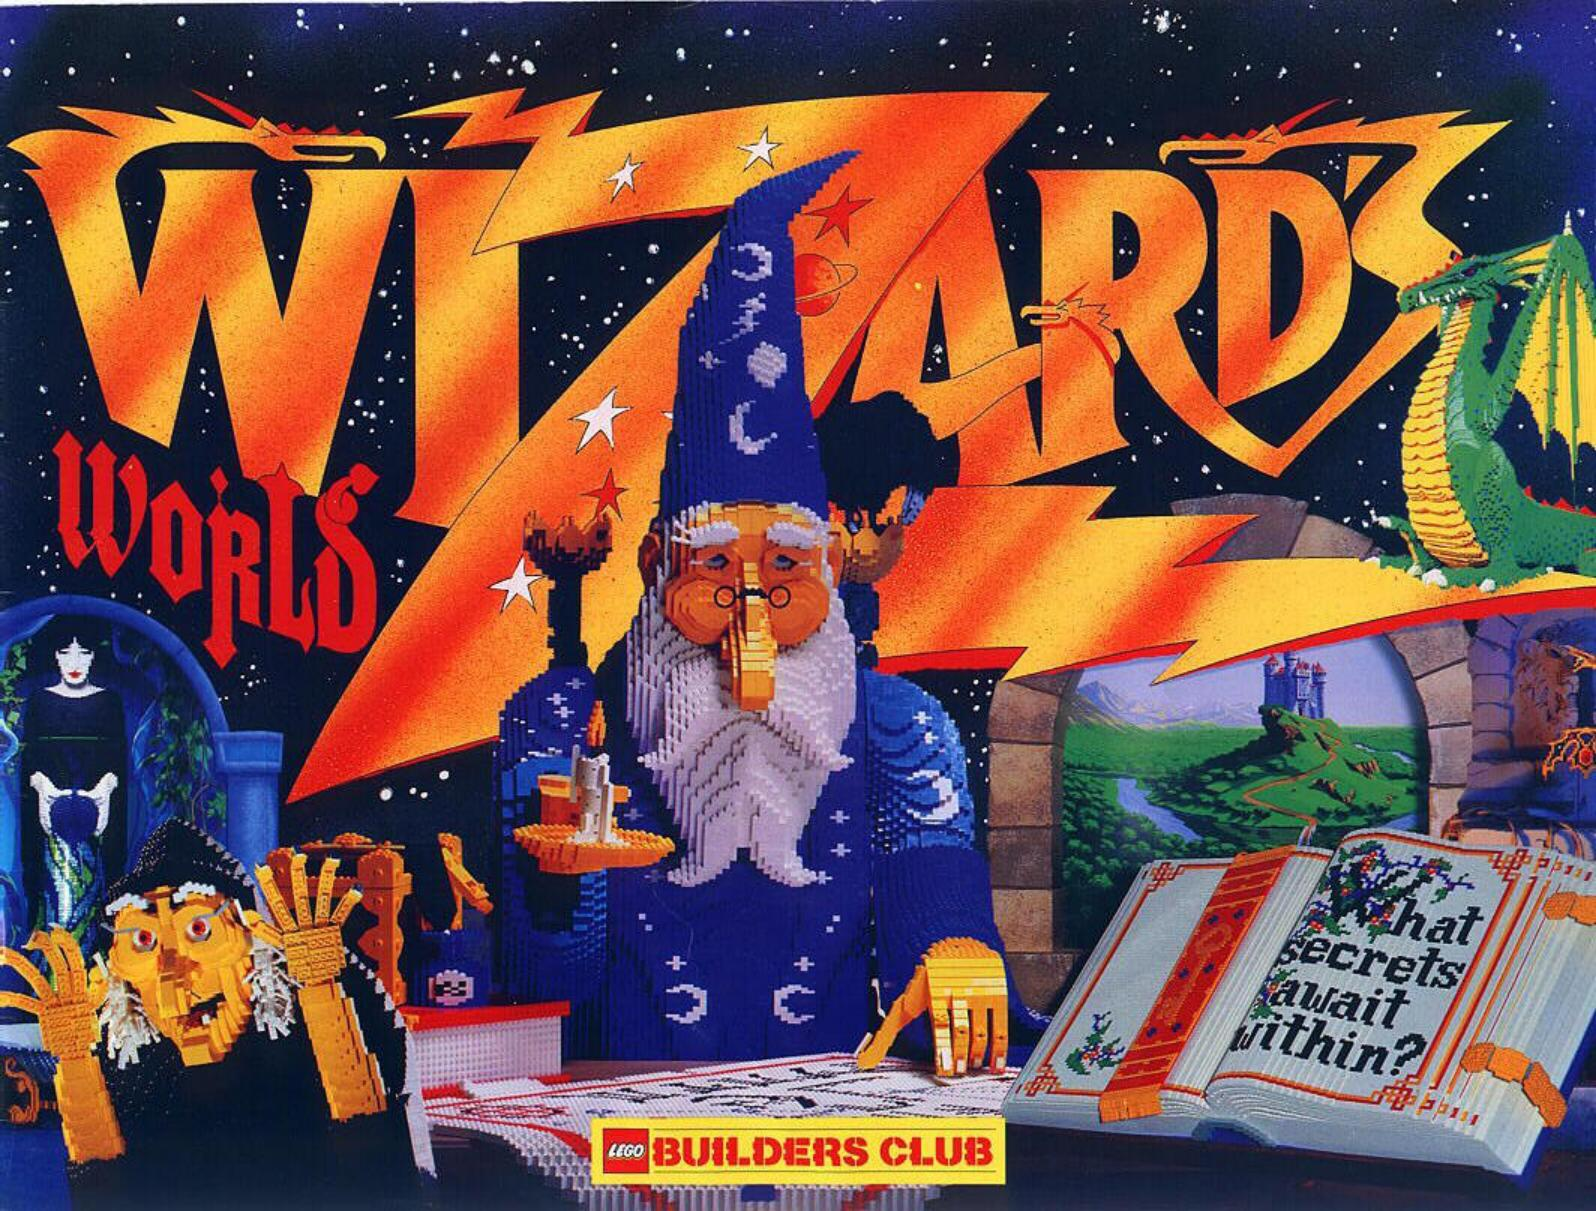 1993-u_s_a_-20-pages-wizards-world.jpg